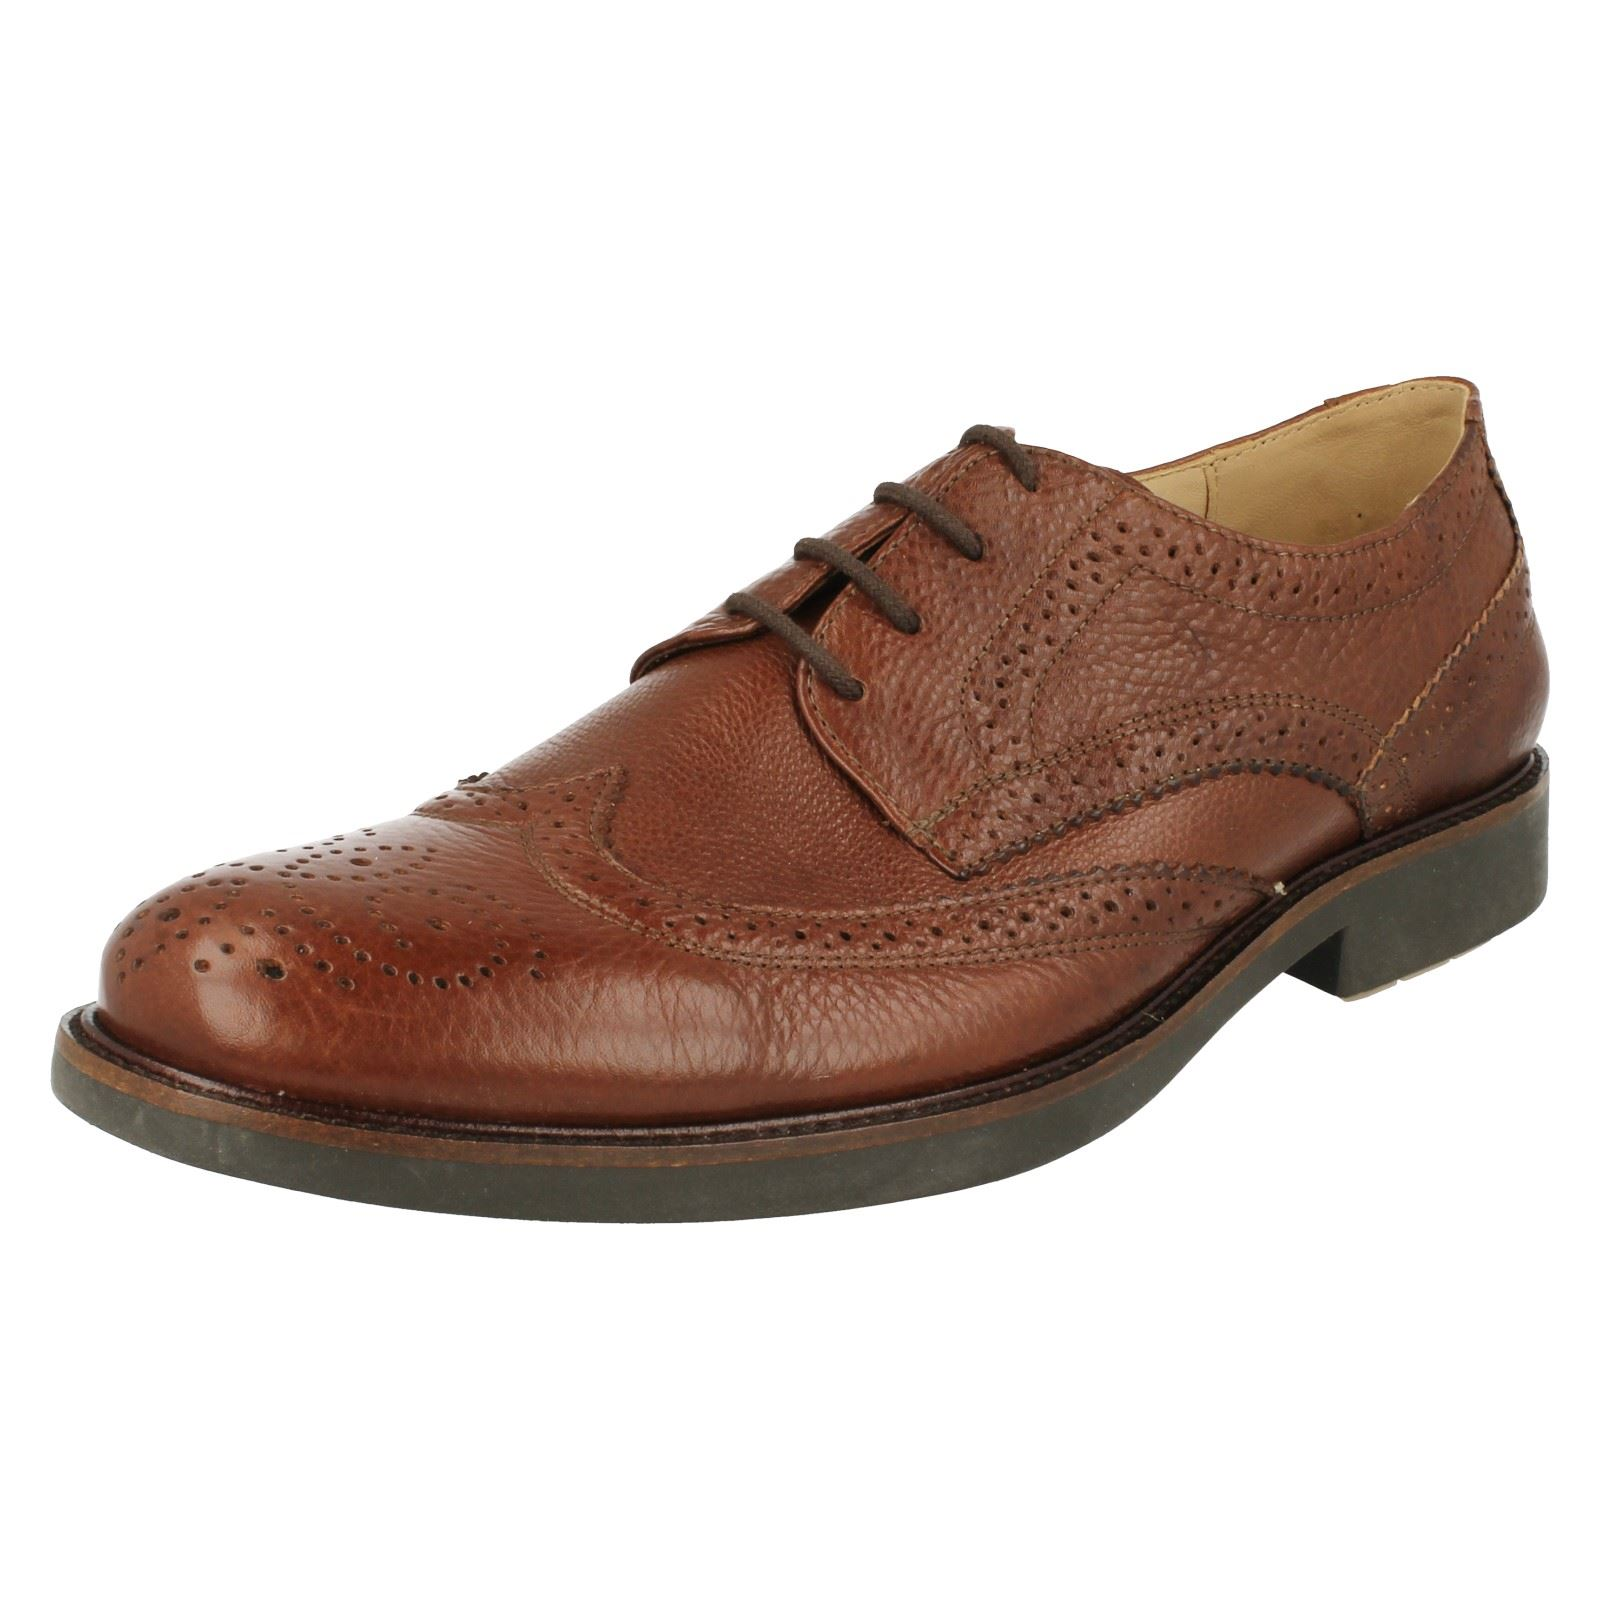 Uomo Schuhes Anatomic Smart Brogue Styled Schuhes Uomo Palma 54cfe9